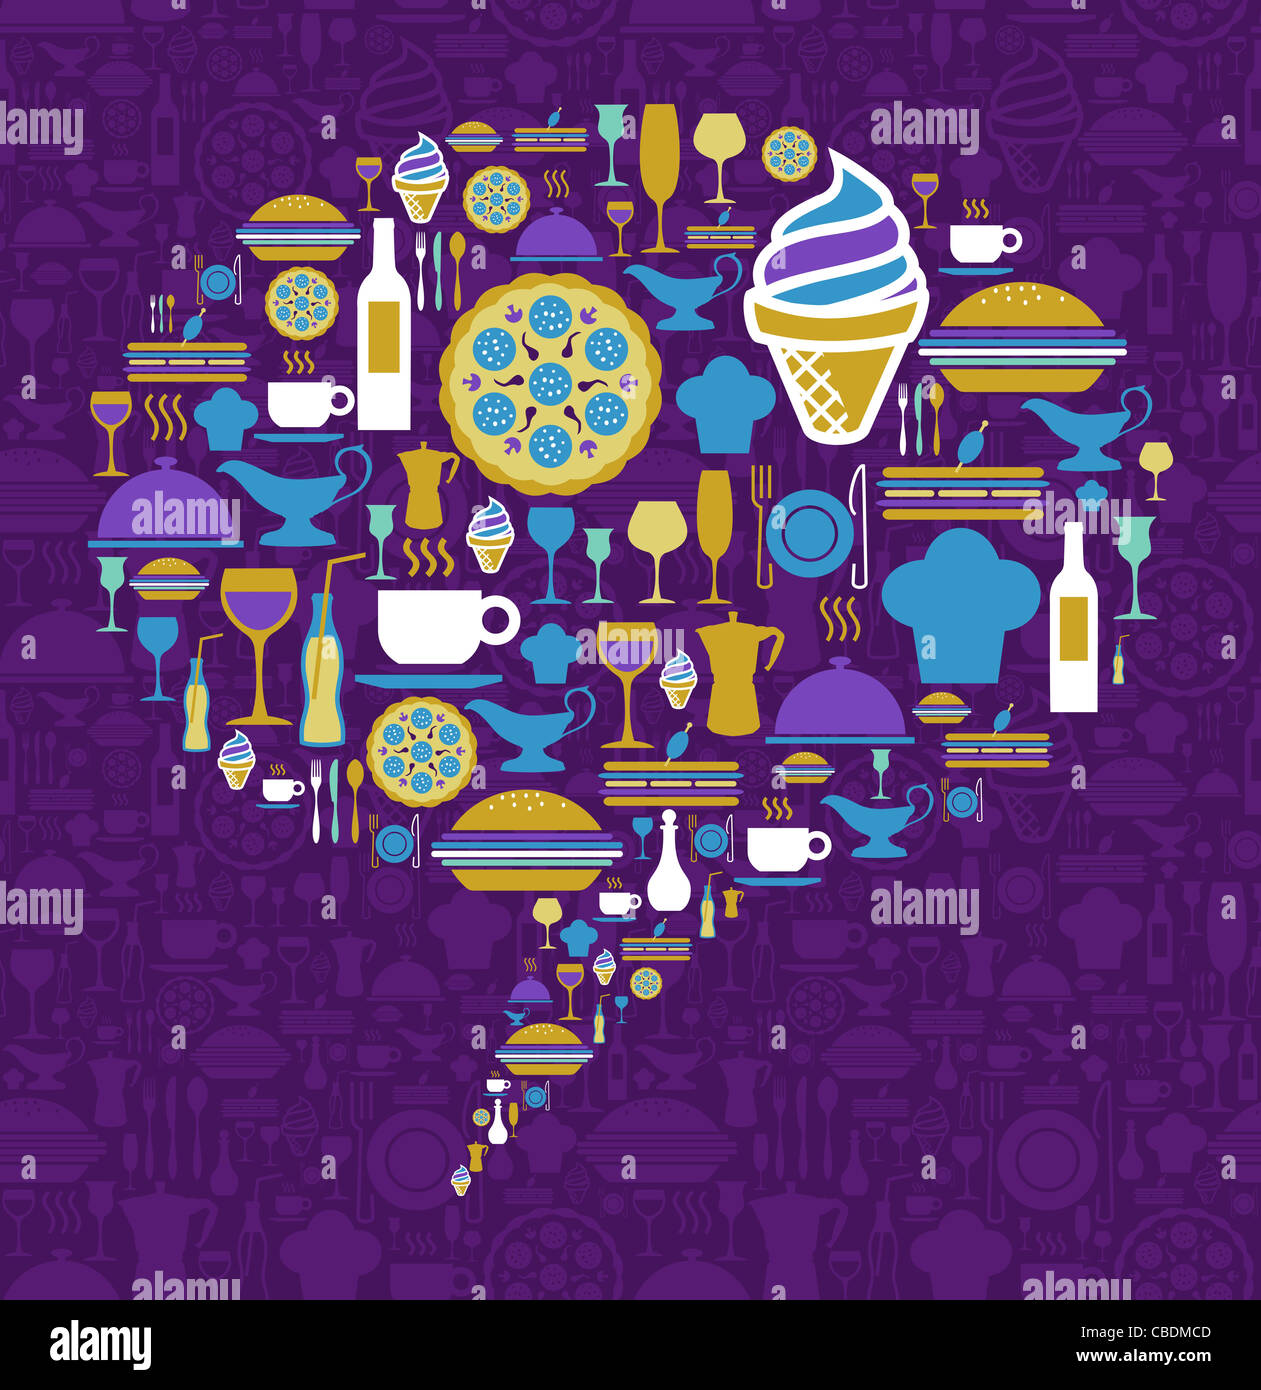 Dialogue bubble shape made with gourmet icons on a violet background. Vector file available. - Stock Image